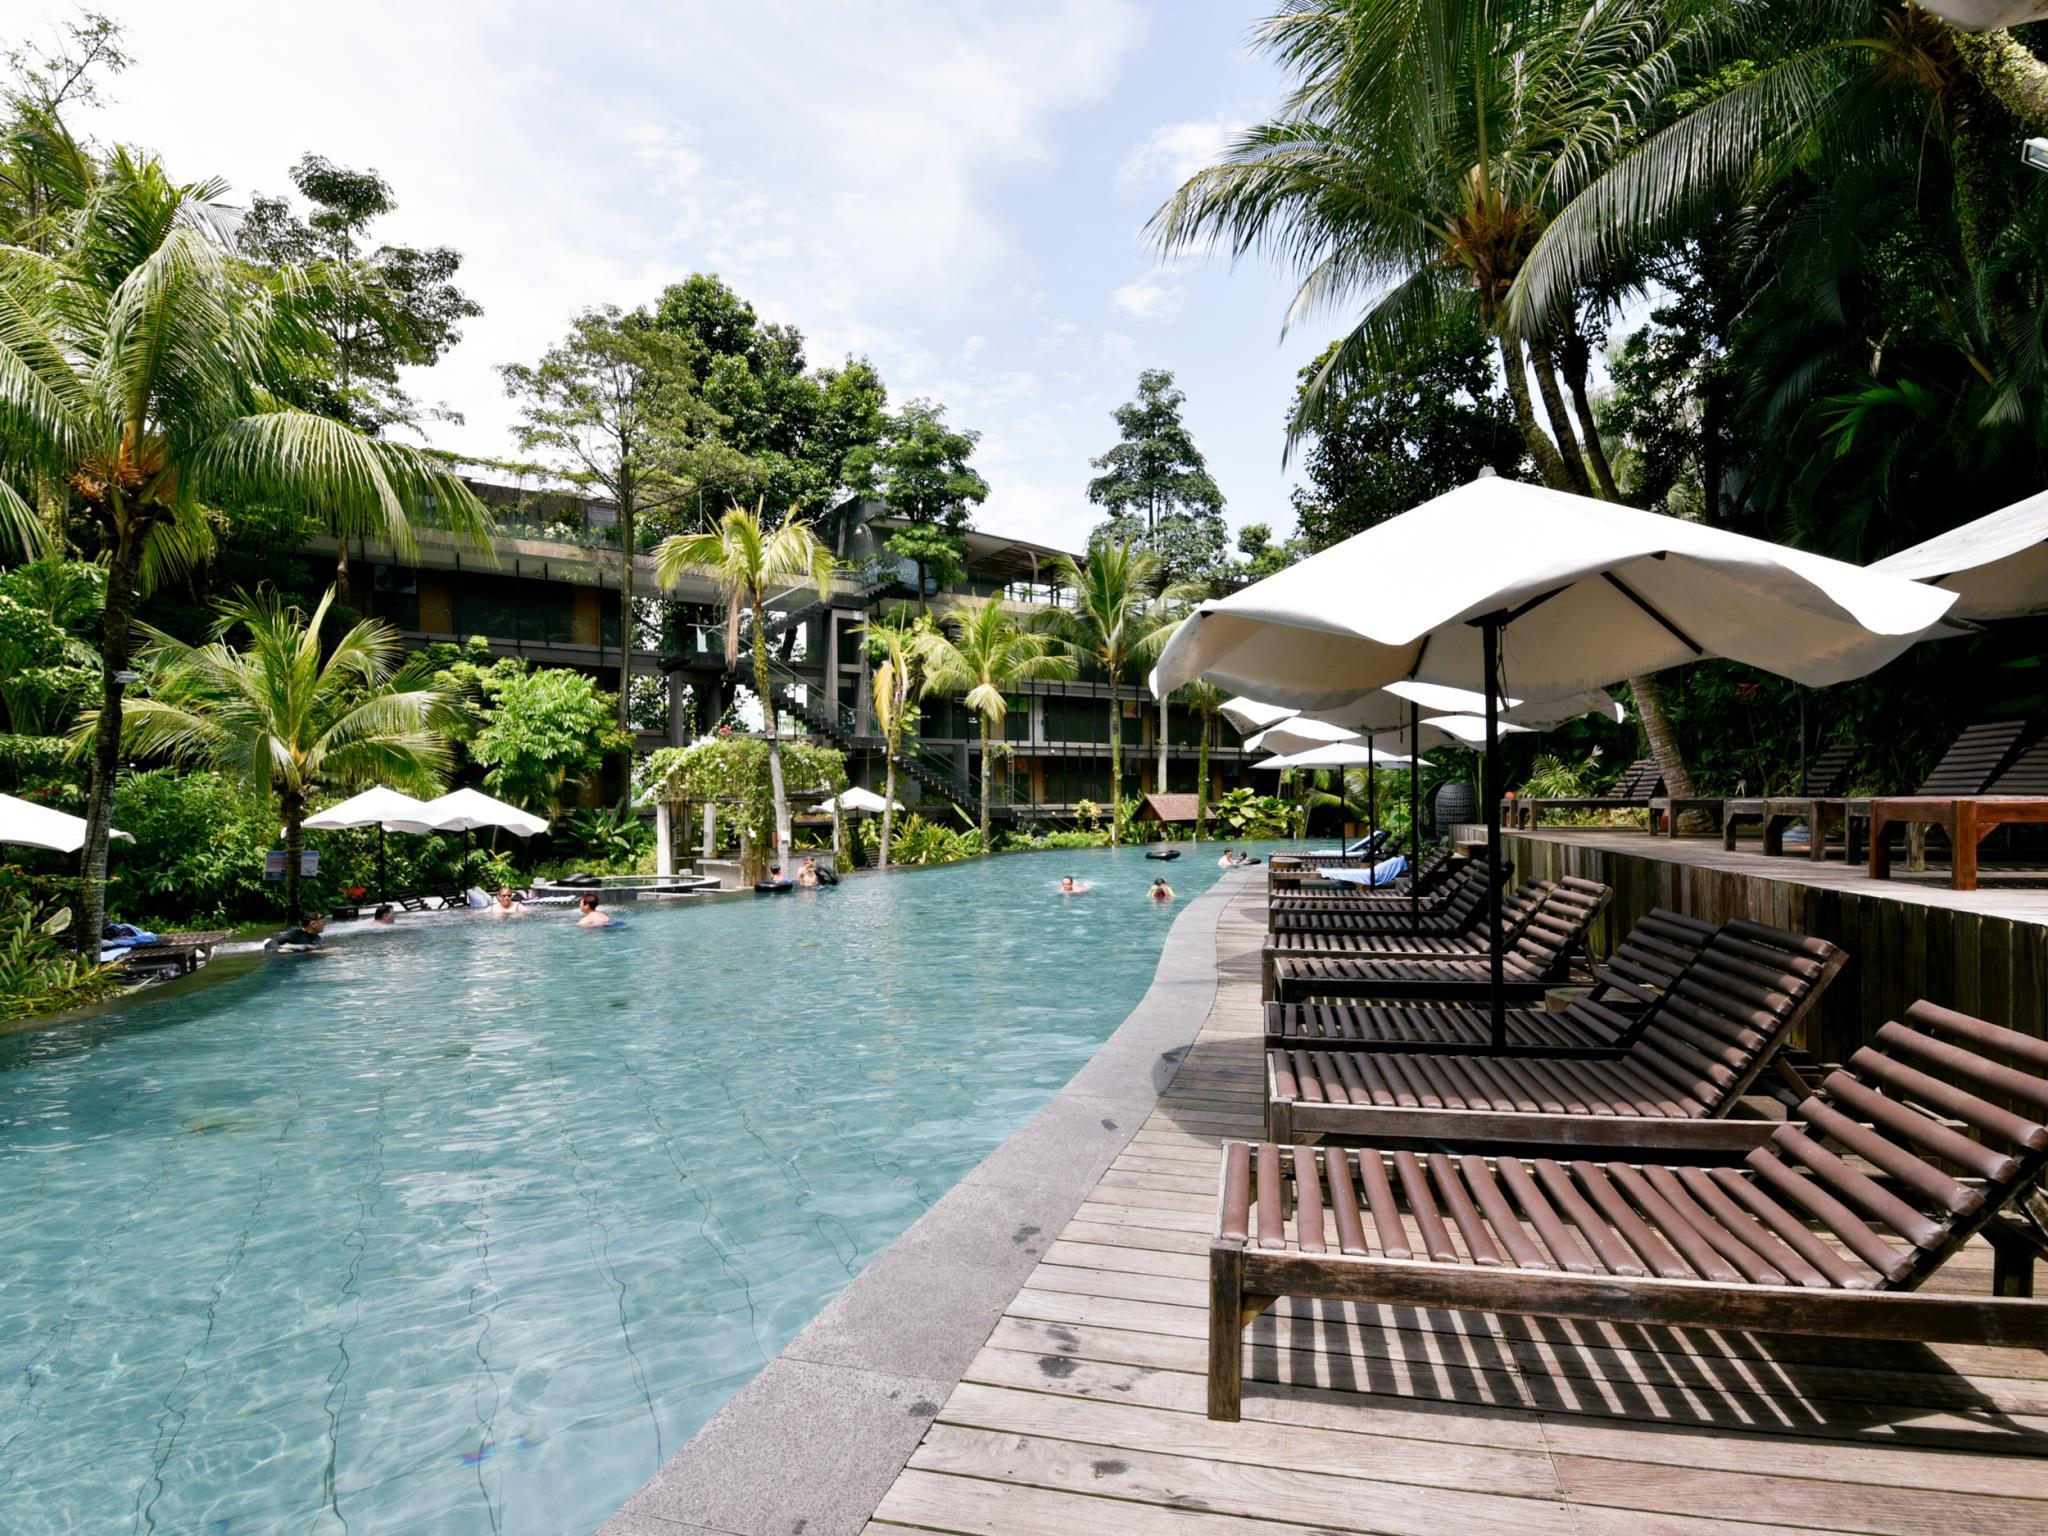 Siloso Beach Resort Singapore